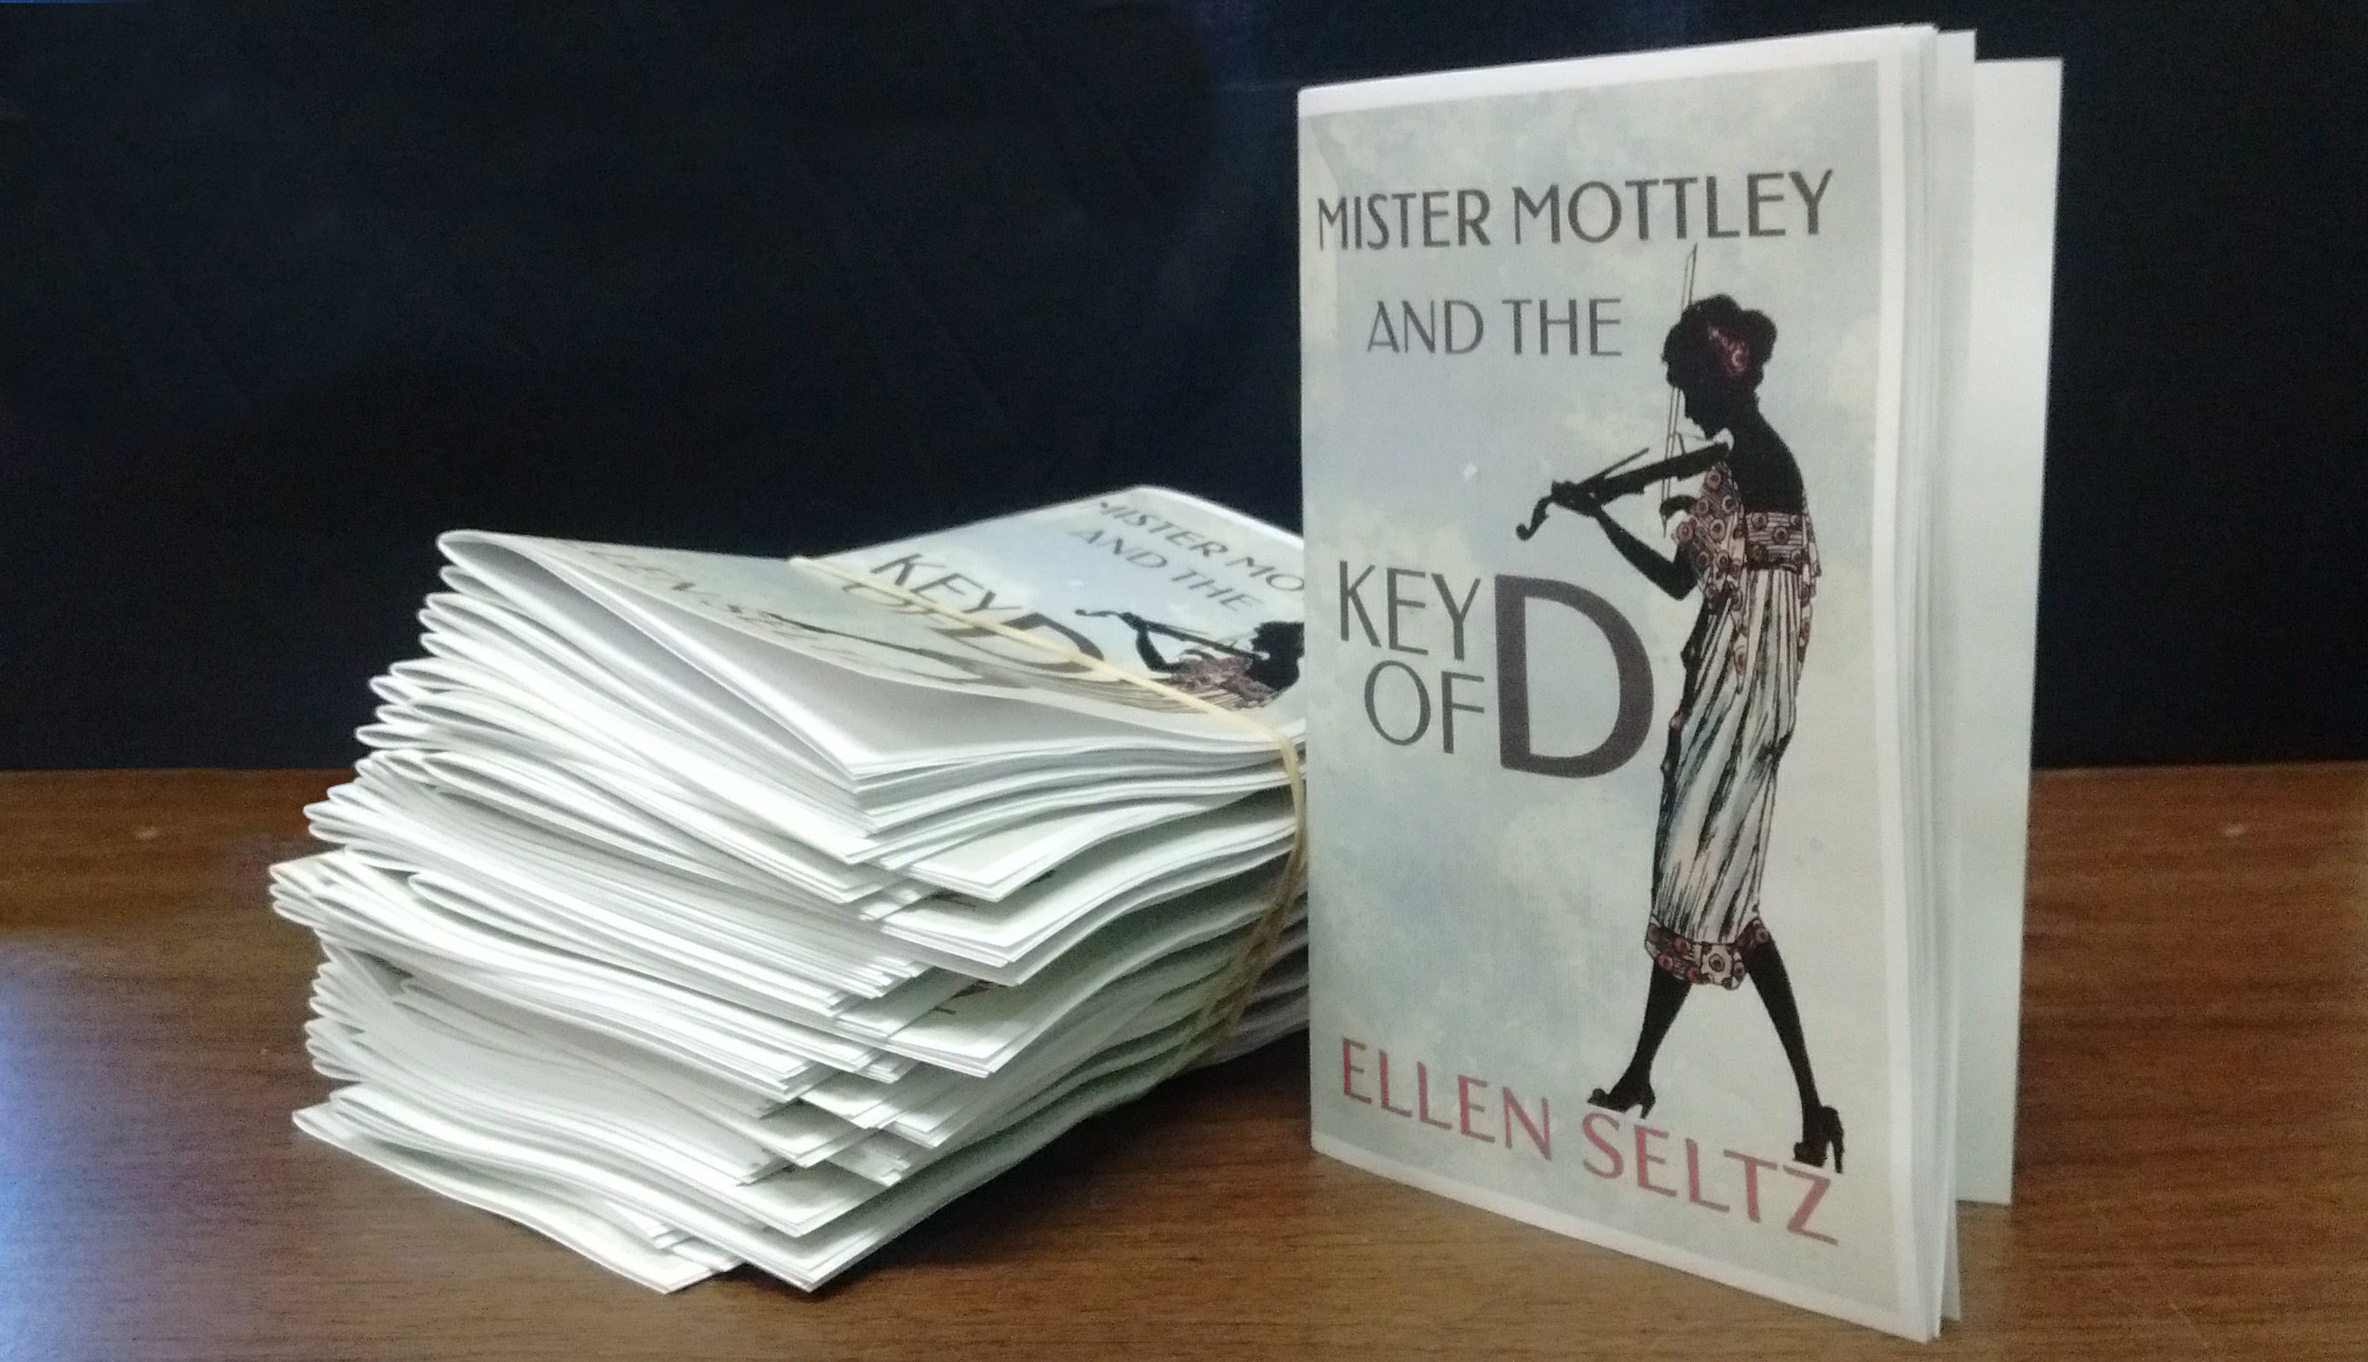 Mister Mottley and the Key of D, by Ellen Seltz